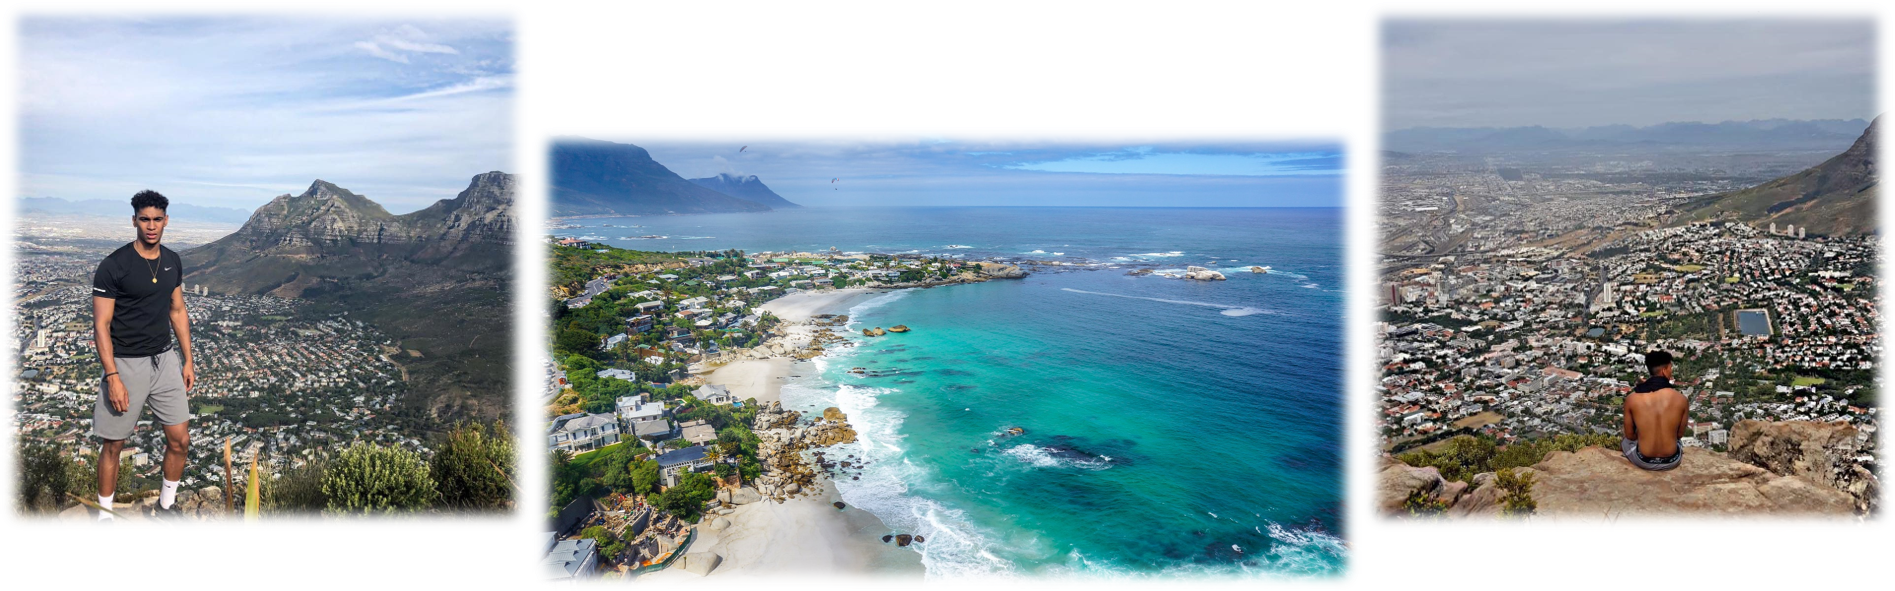 cape town - south africa - all things travel - models in south africa